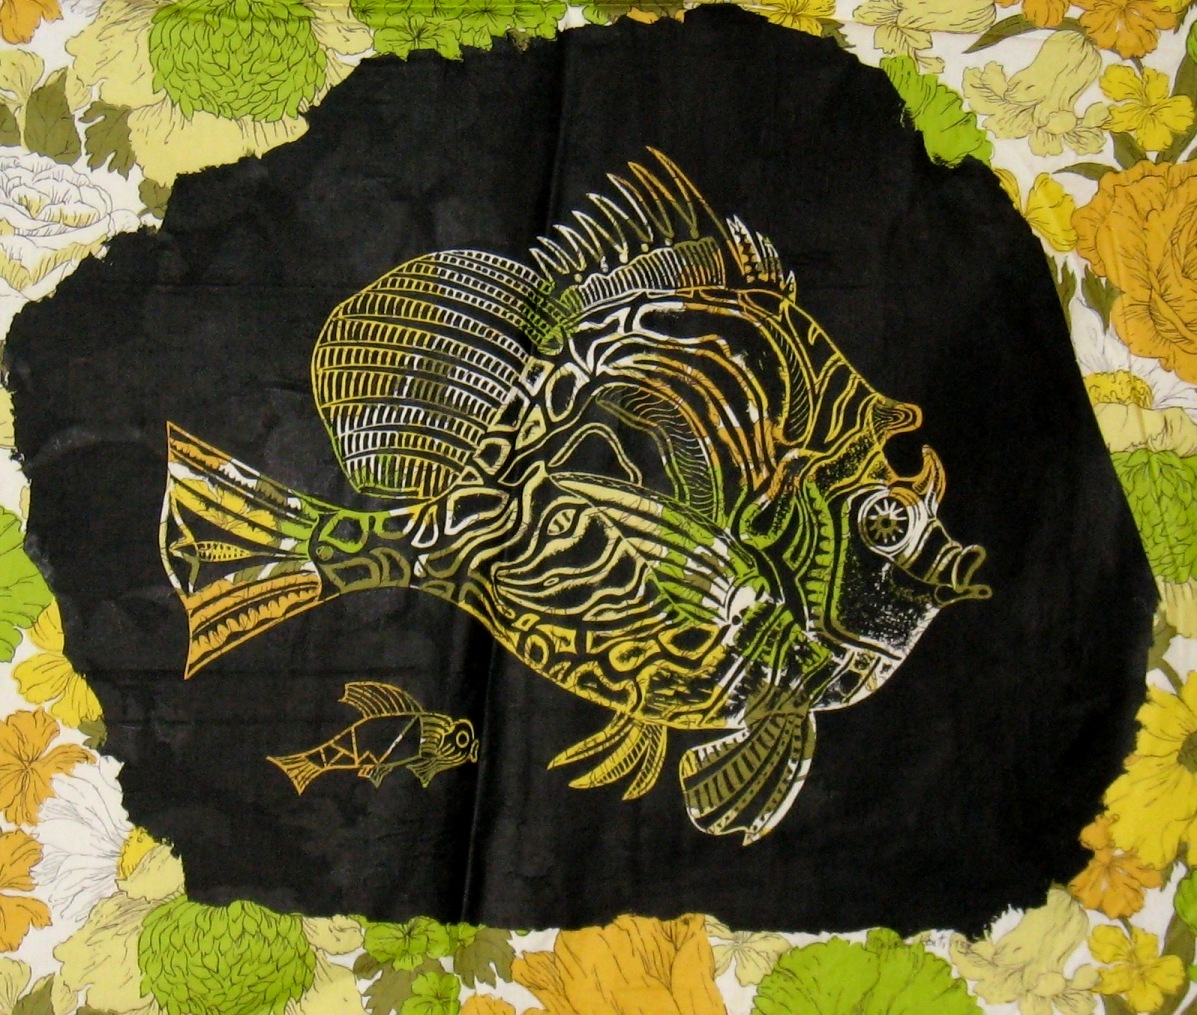 Kent made ingenious use of fabric patterns, as with this print, where some Victorian flowers are made into the scales of a tropical fish.